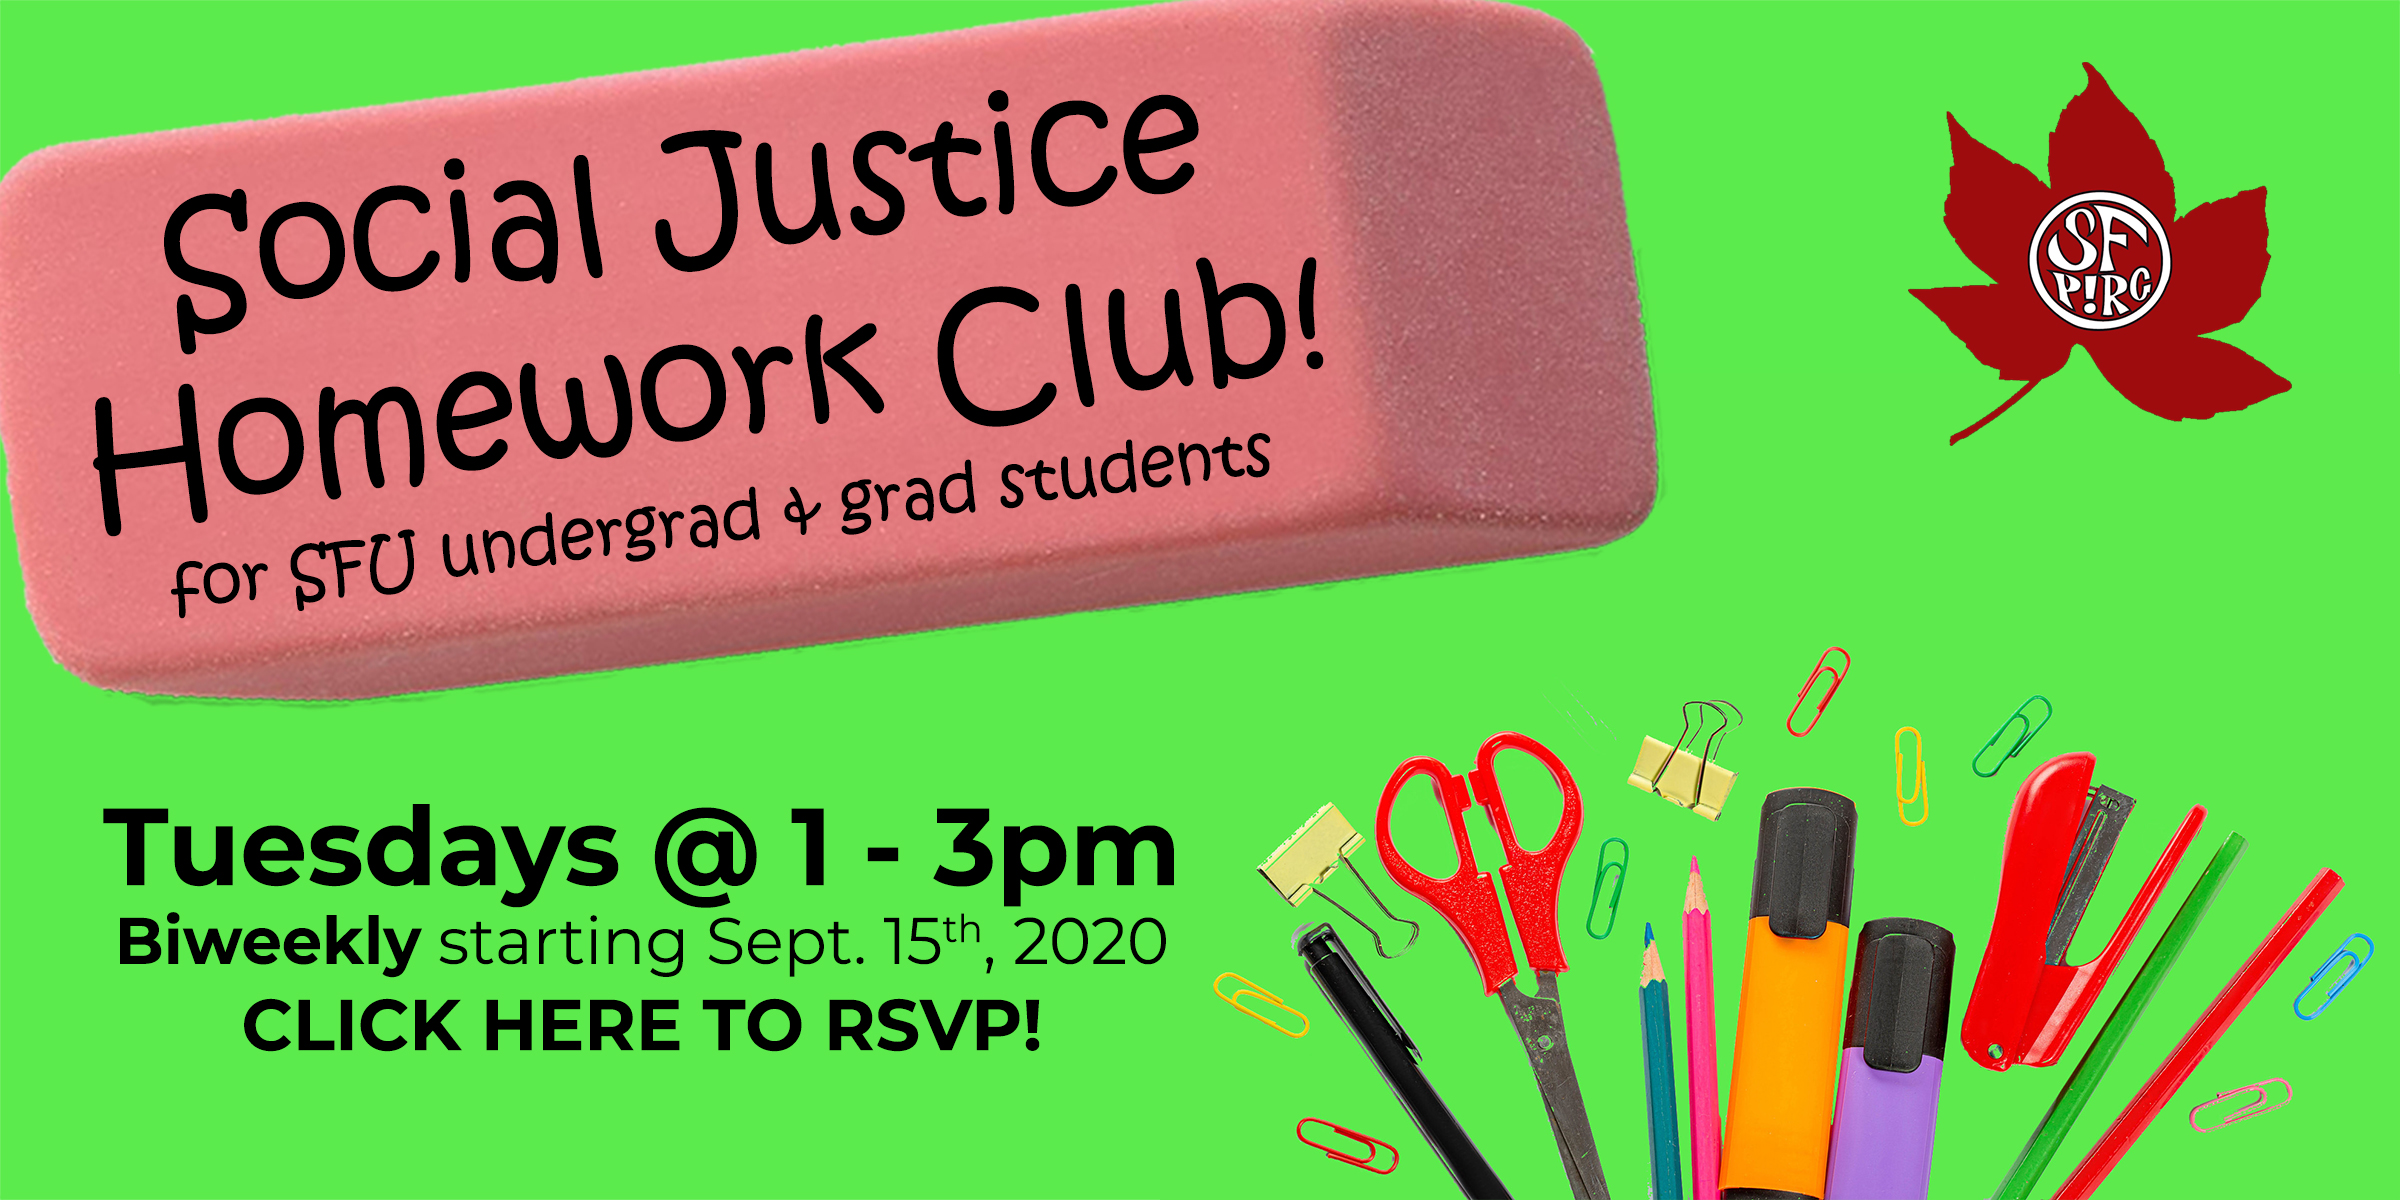 Social Justice Homework Club for SFU undergrad and grad students! Tuesdays 1-3pm, biweekly starting Sept. 15th, 2020. Click here to RSVP!